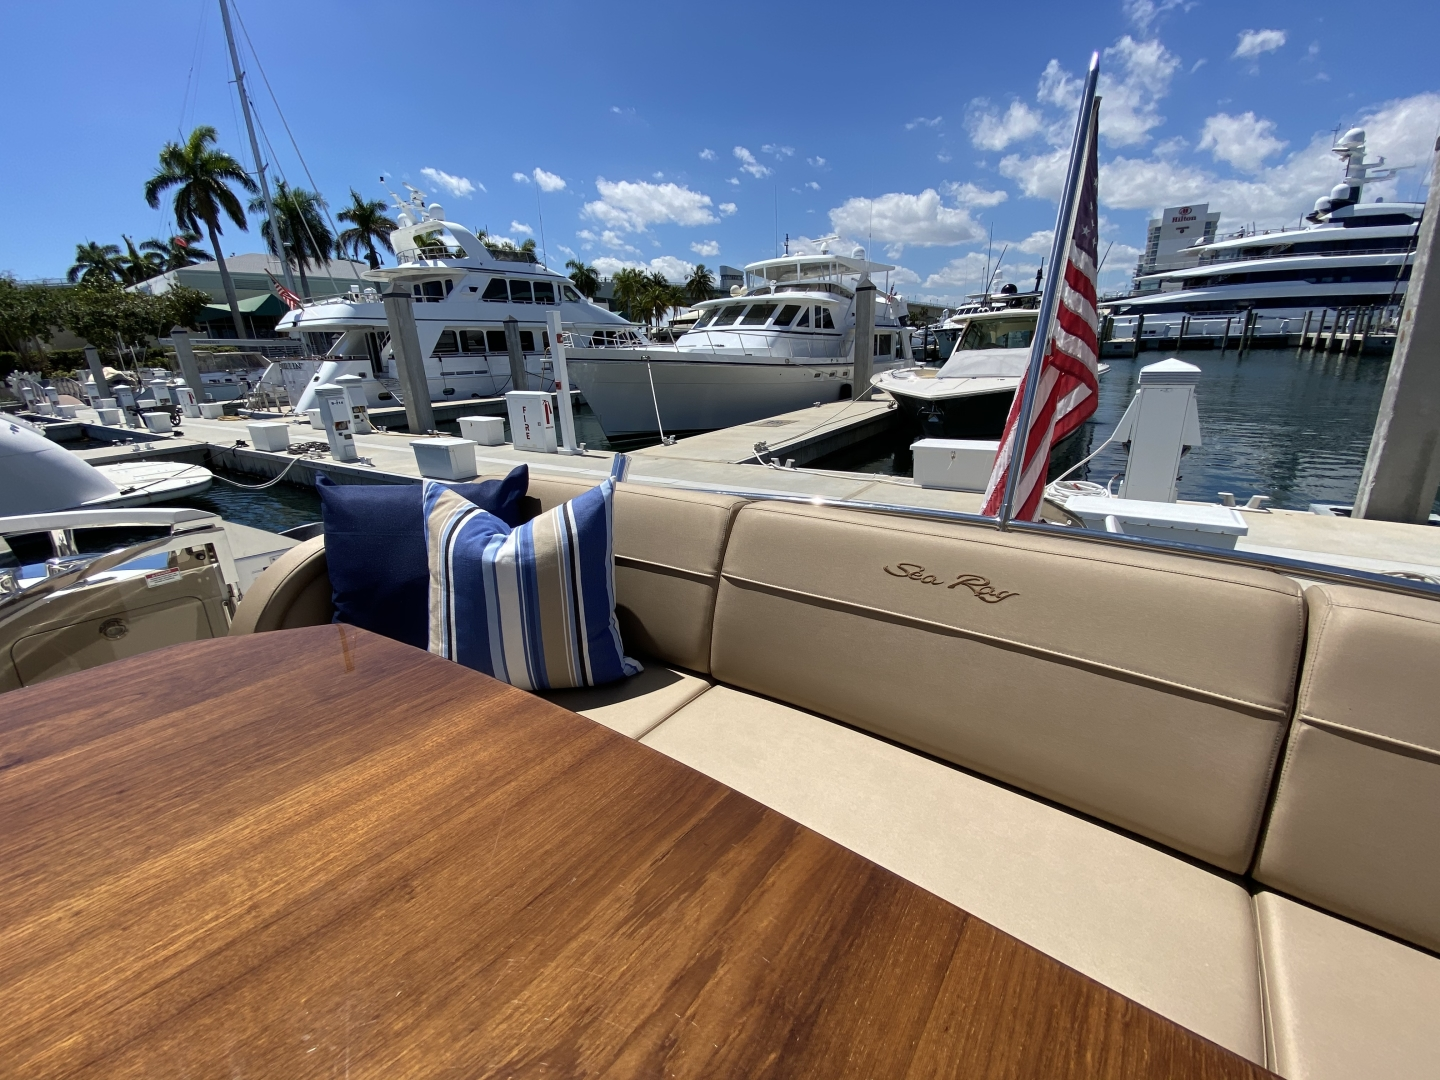 Sea Ray-L650 Express 2016-Cozy Fort Lauderdale-Florida-United States-2016 Sea Ray L650 Cozy   Cockpit-1372396 | Thumbnail